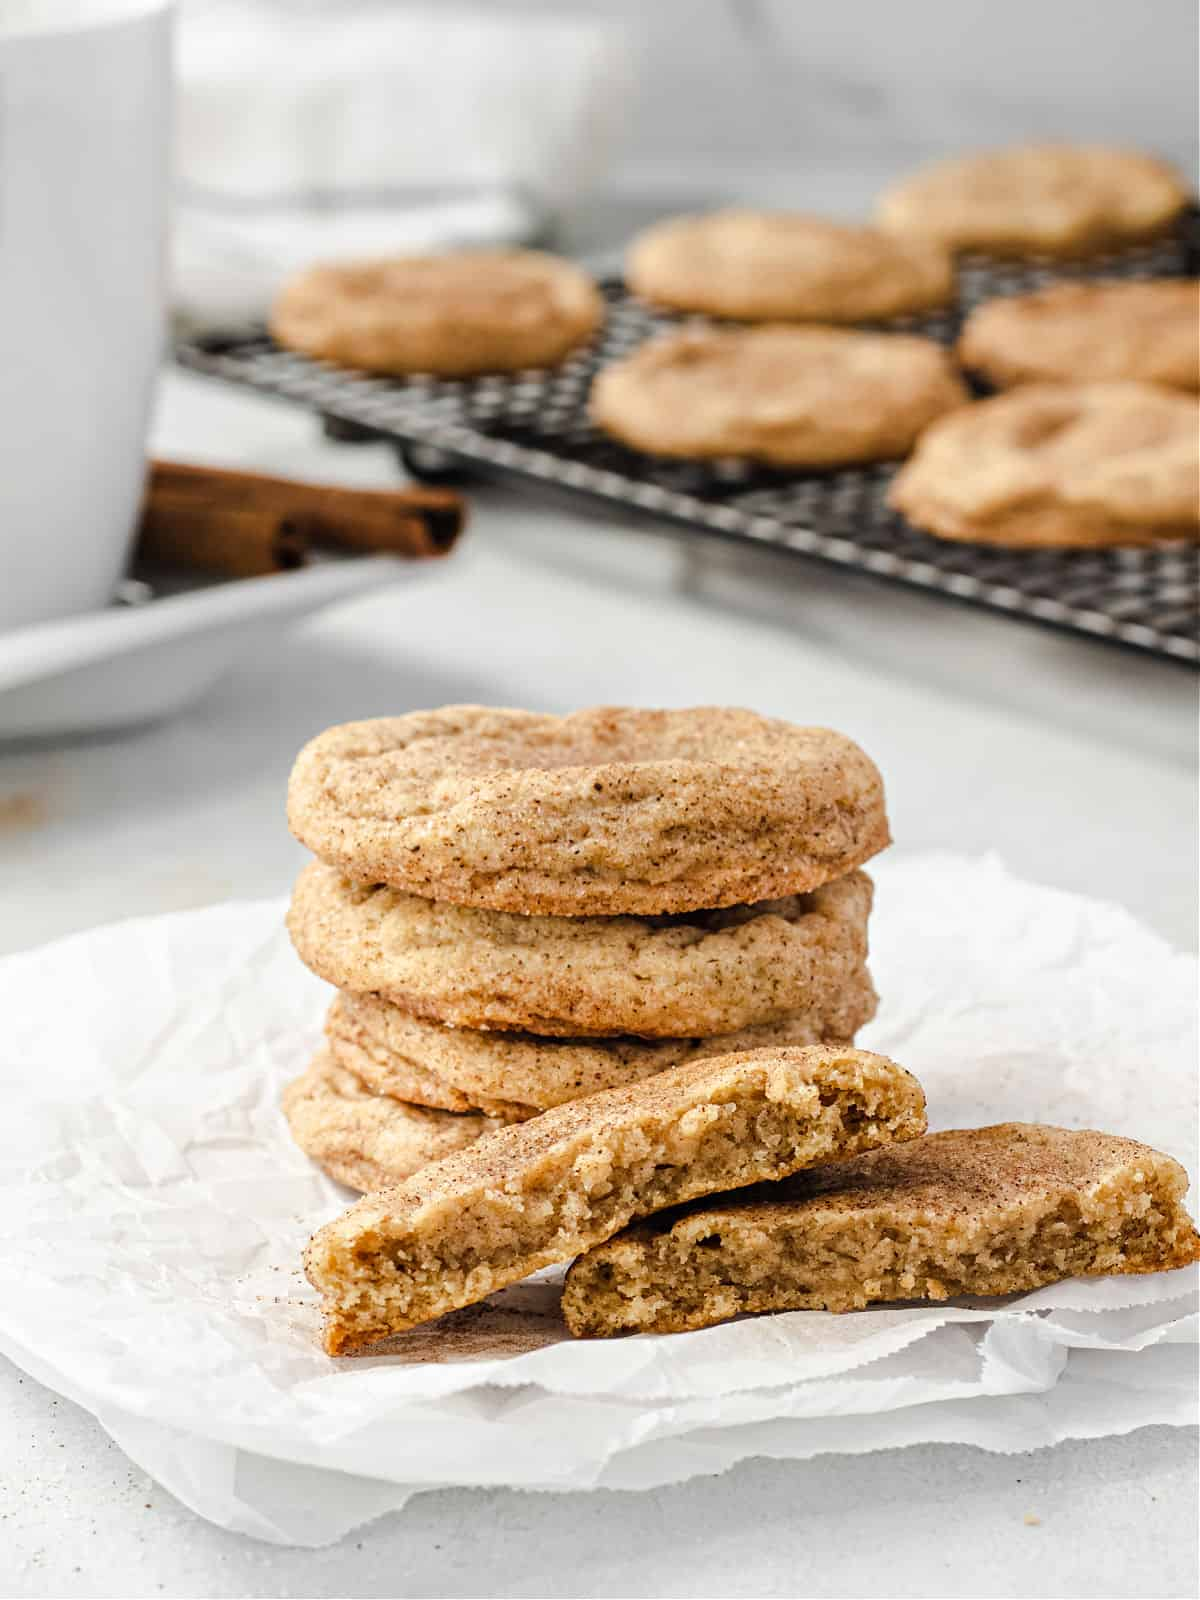 Stack of chai cookies with one broken in half showing chewy texture.